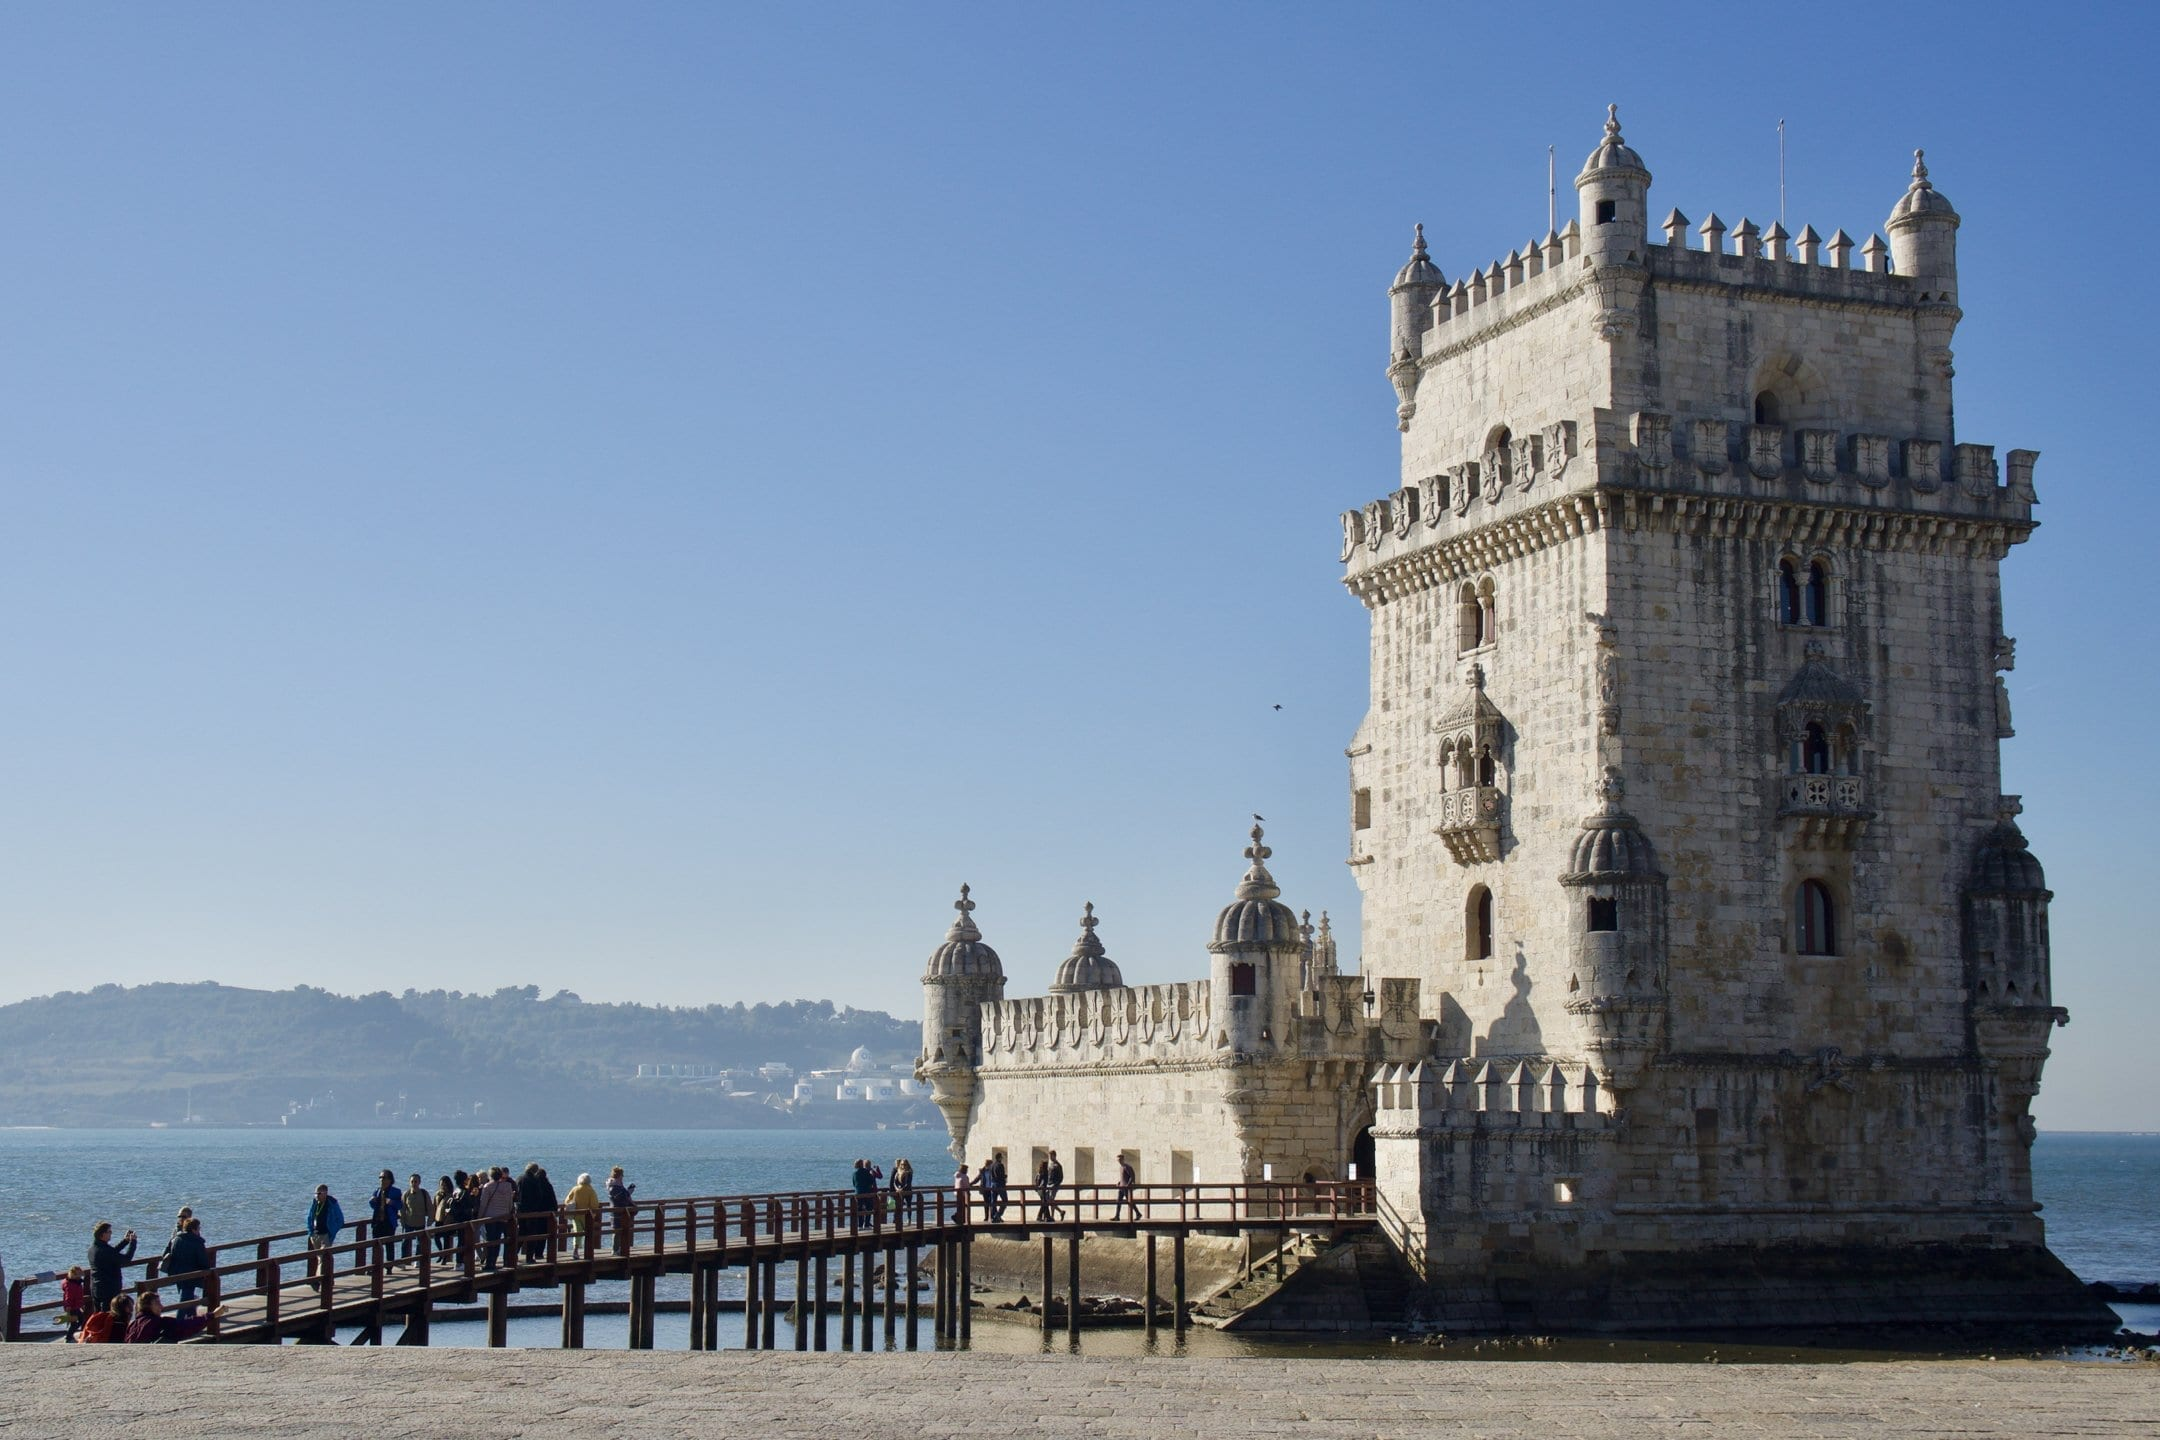 Torre Belem - one of the cool things to do in Lisbon